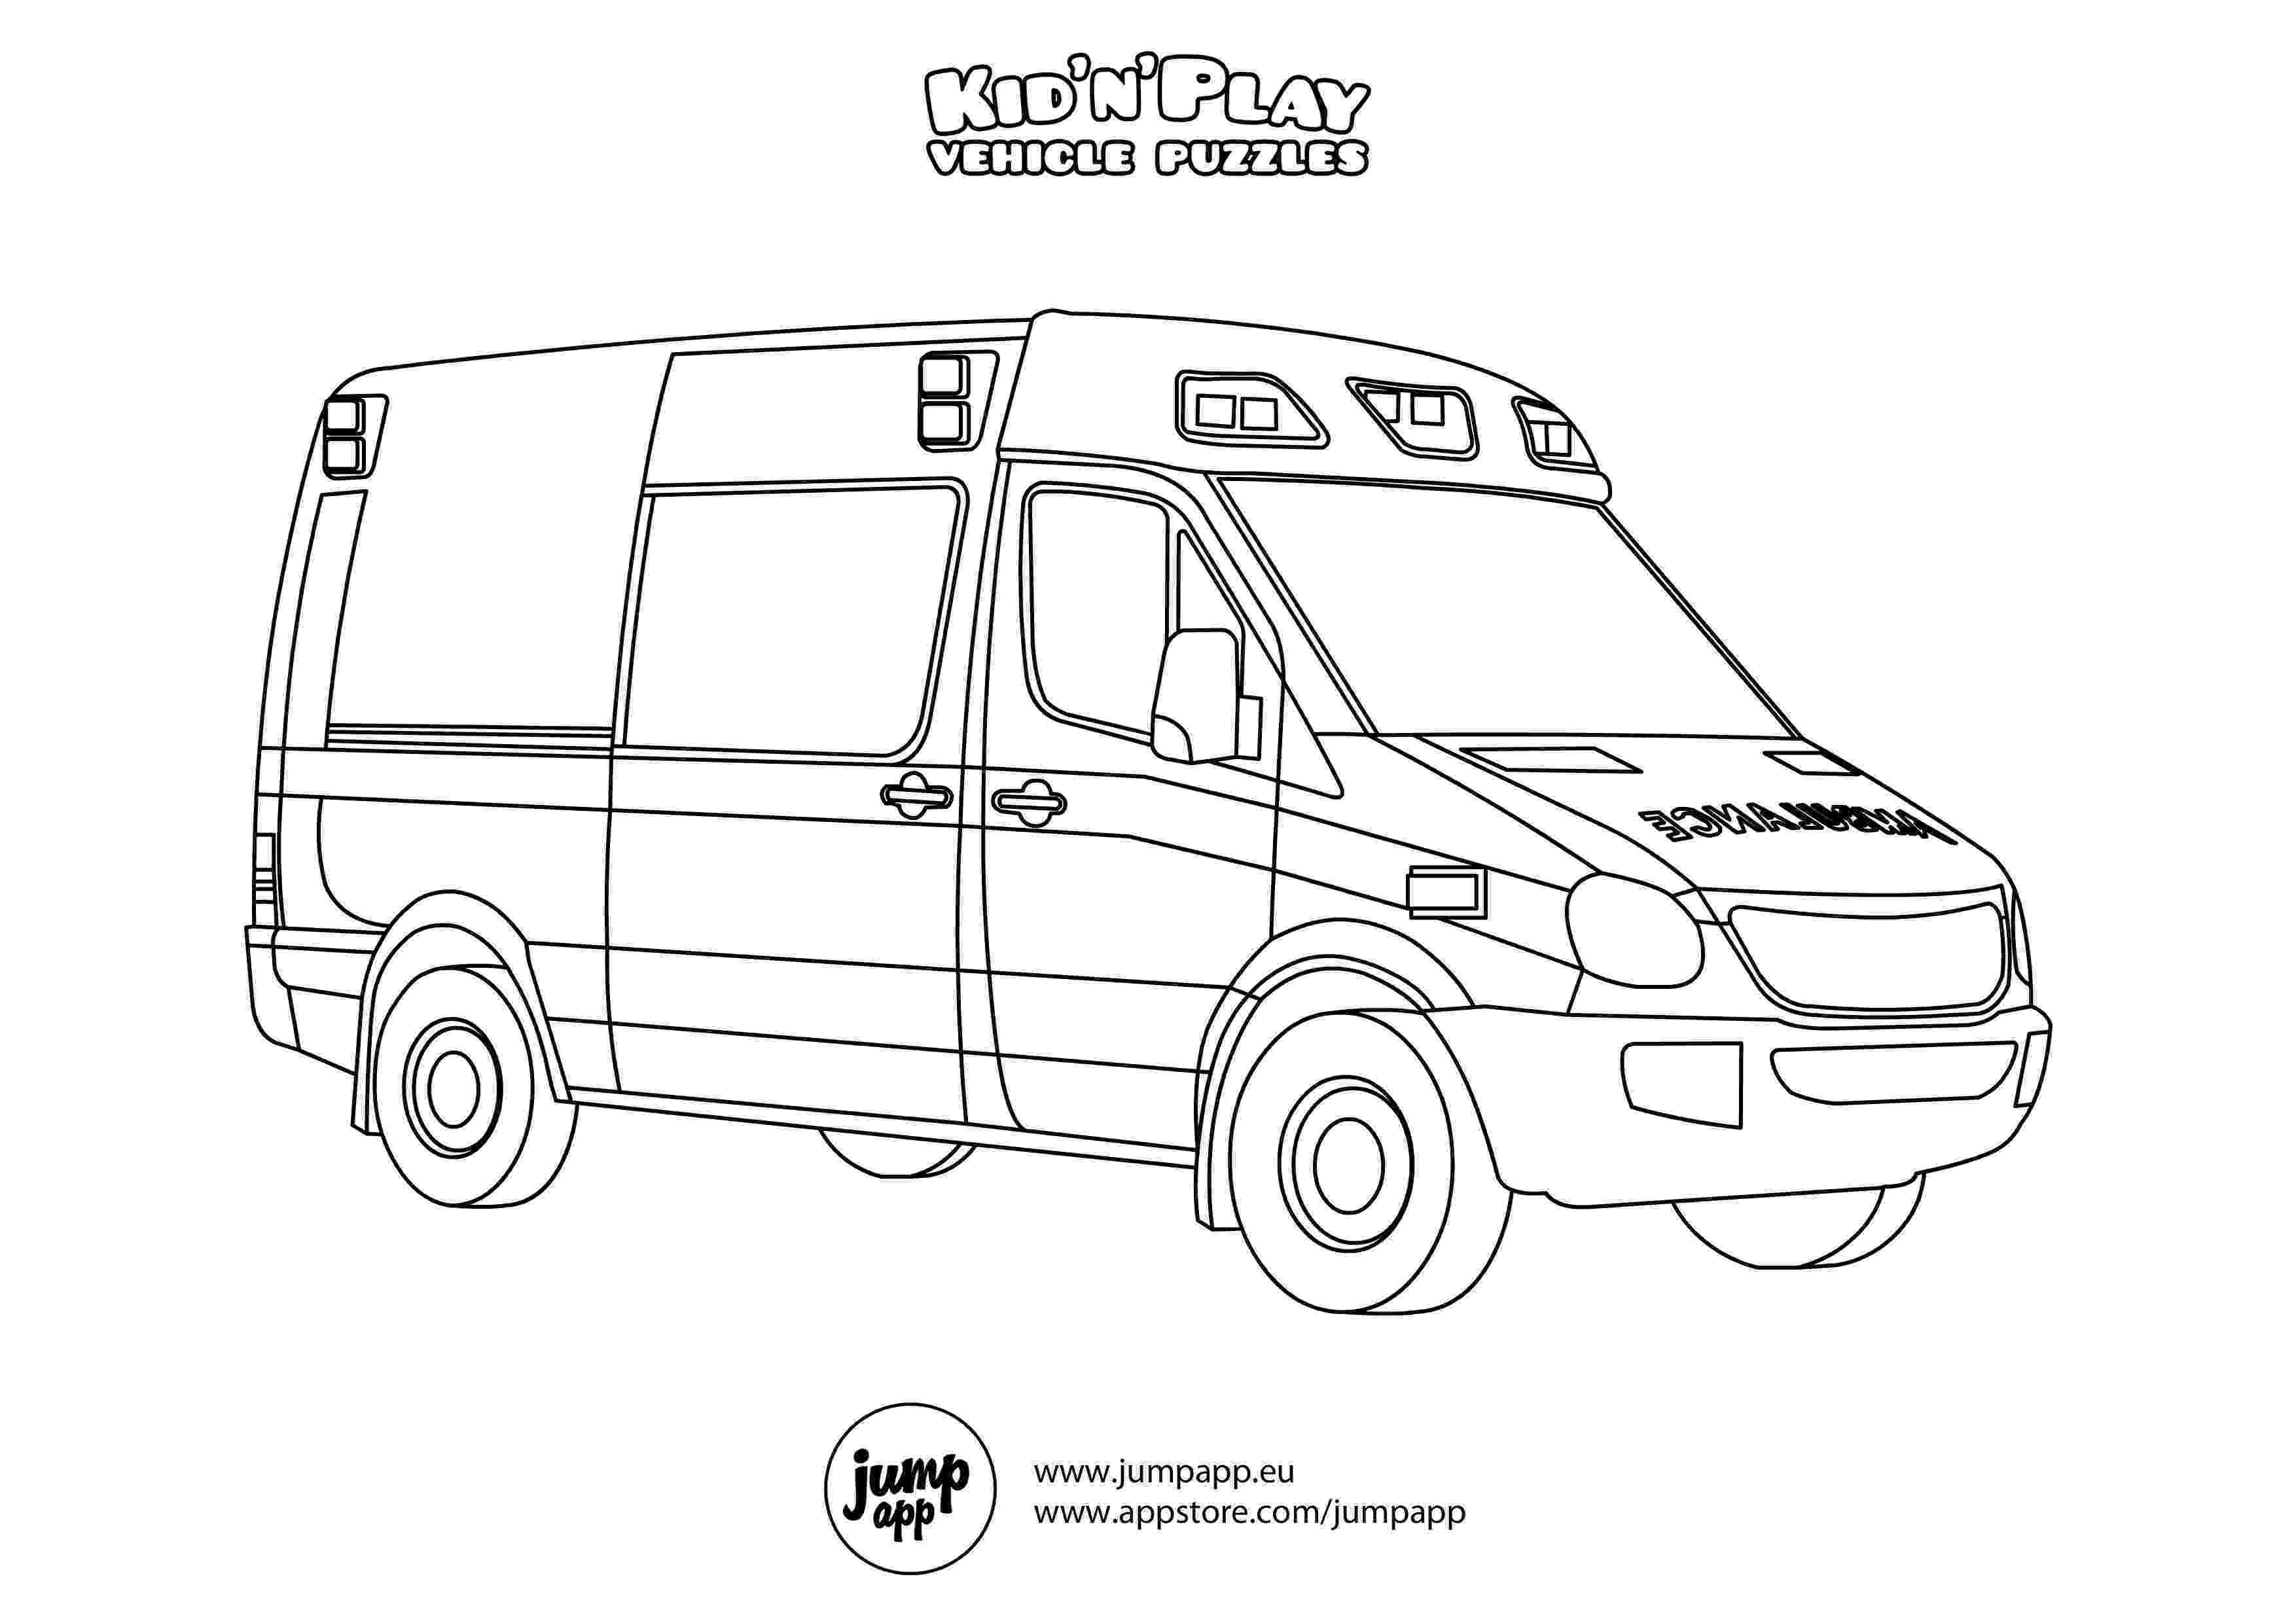 ambulance colouring pages ambulance coloring pages to download and print for free colouring pages ambulance